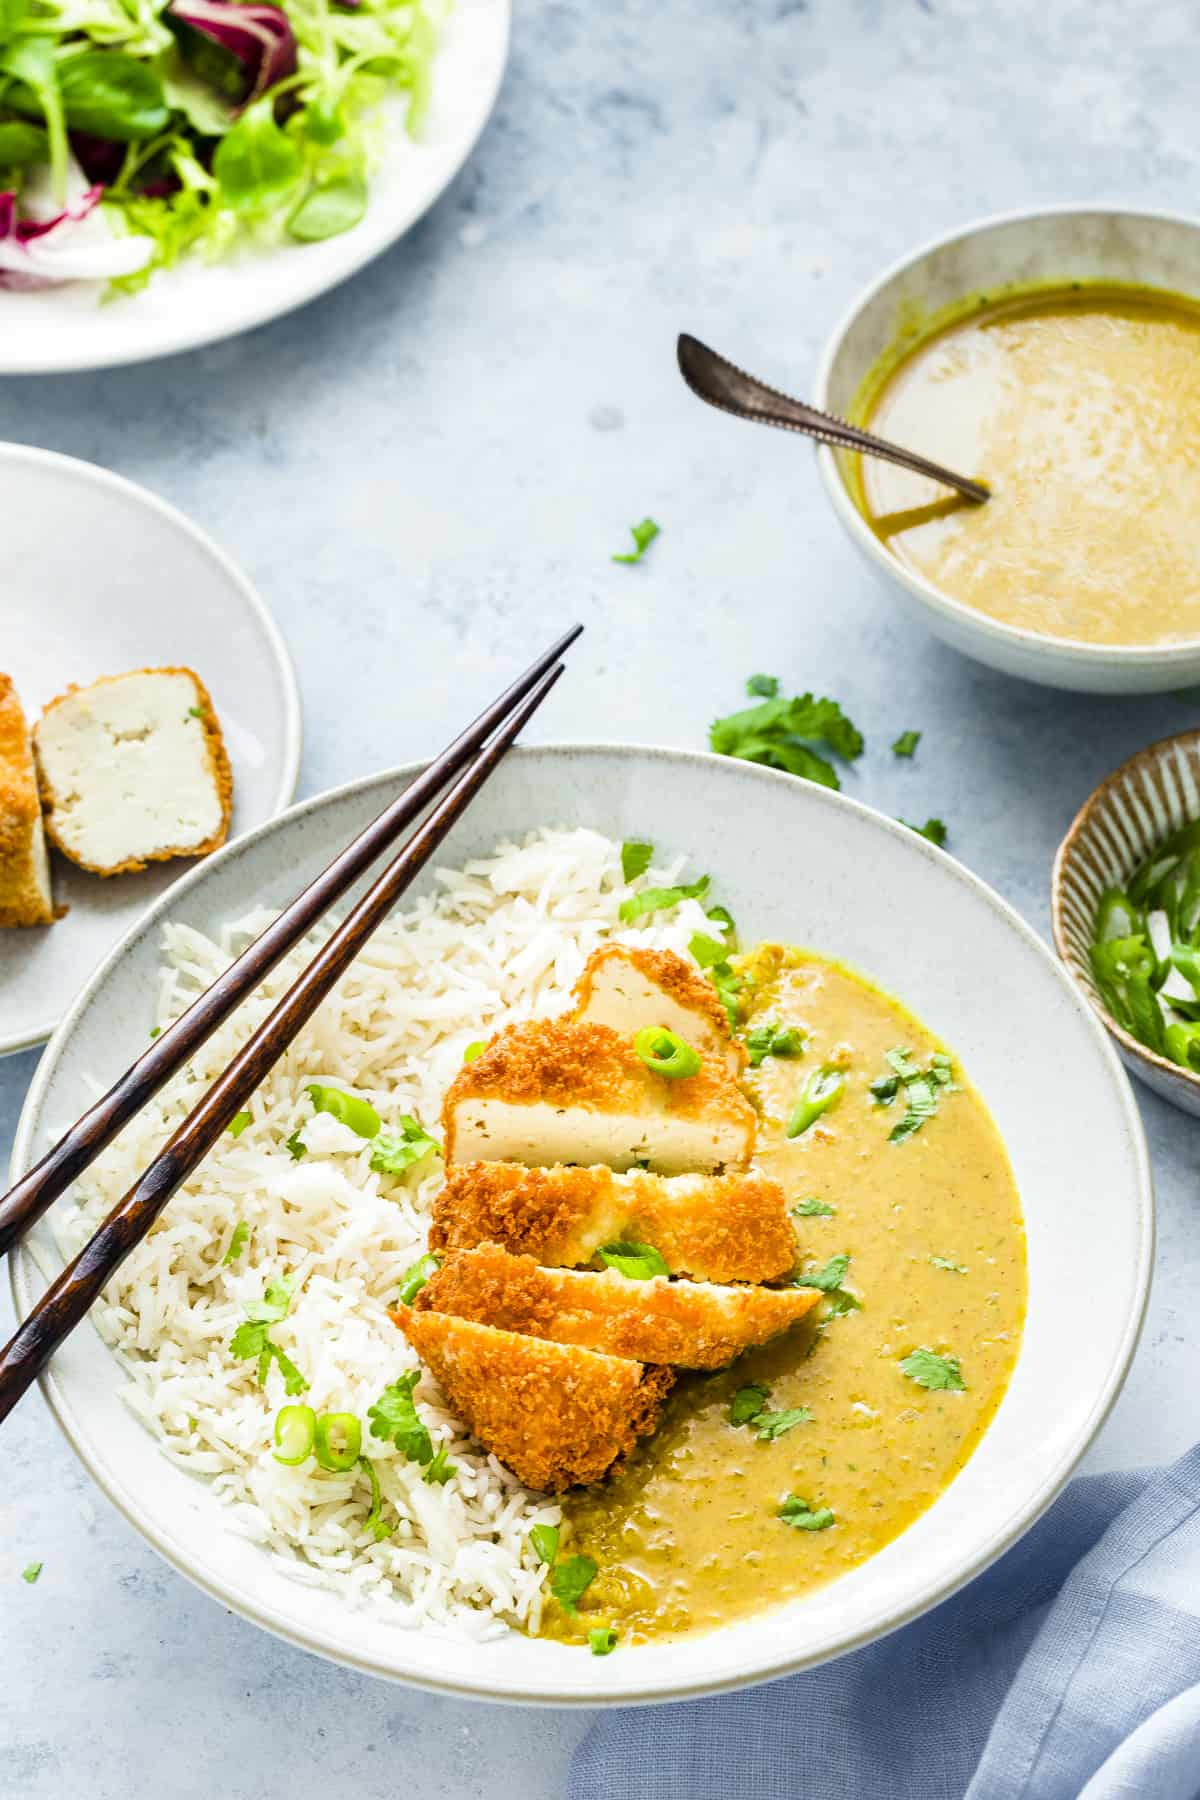 tofu katsu curry in a white bowl with rice on the side. Chop sticks on top of the bowl.